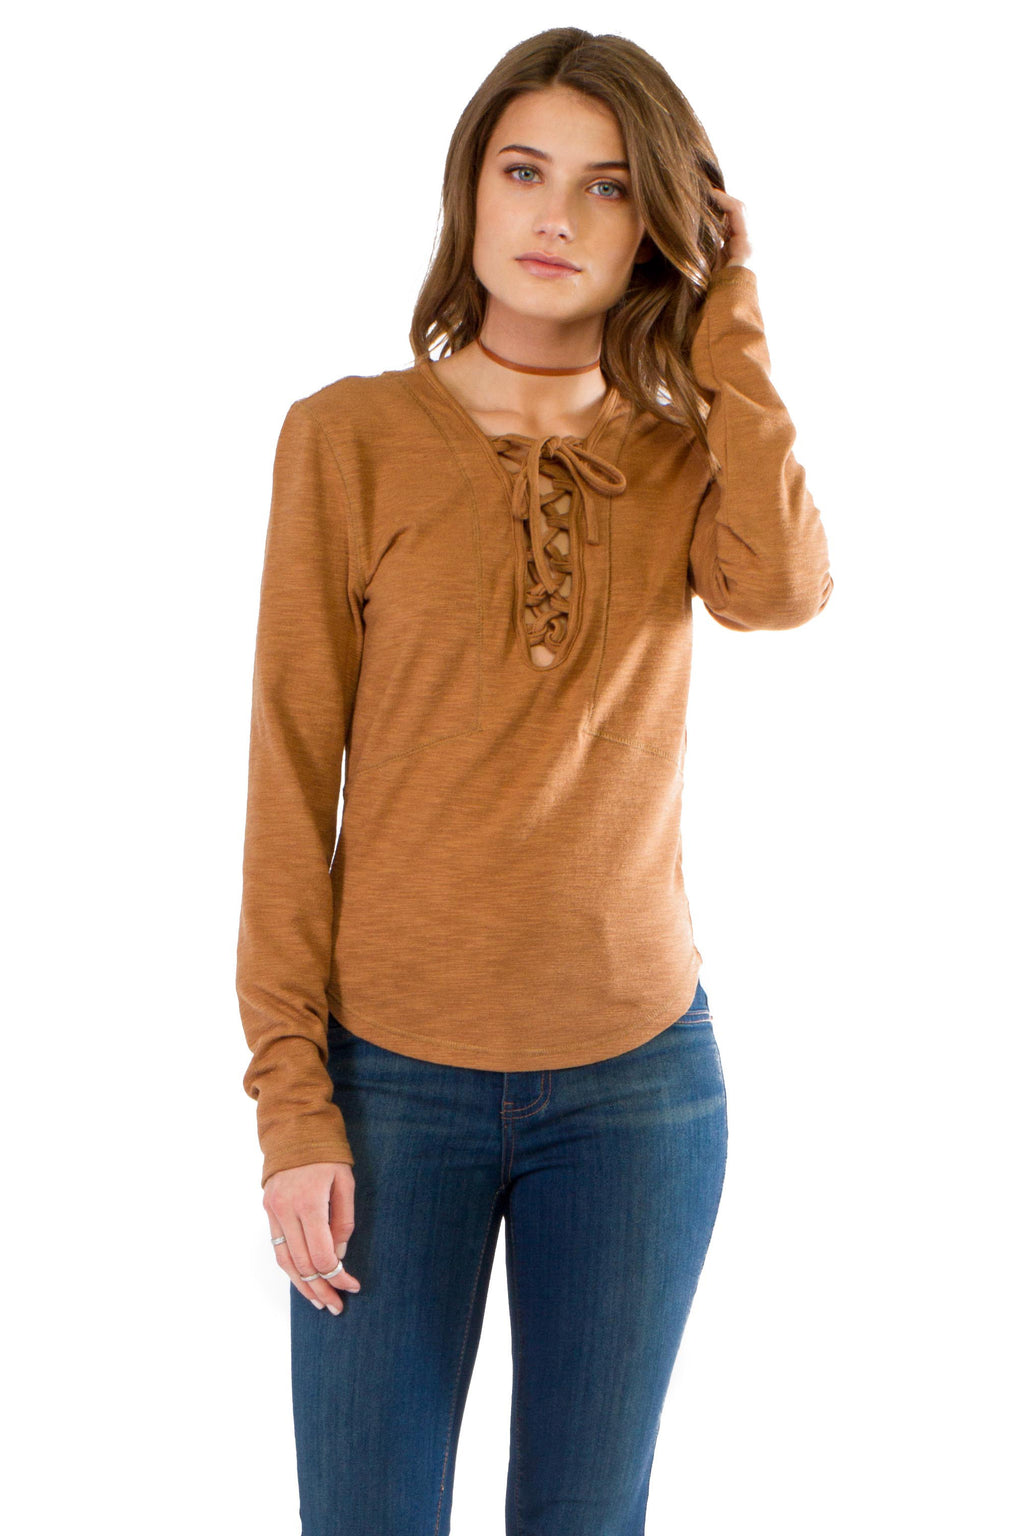 W17-008 Lace Up Henley